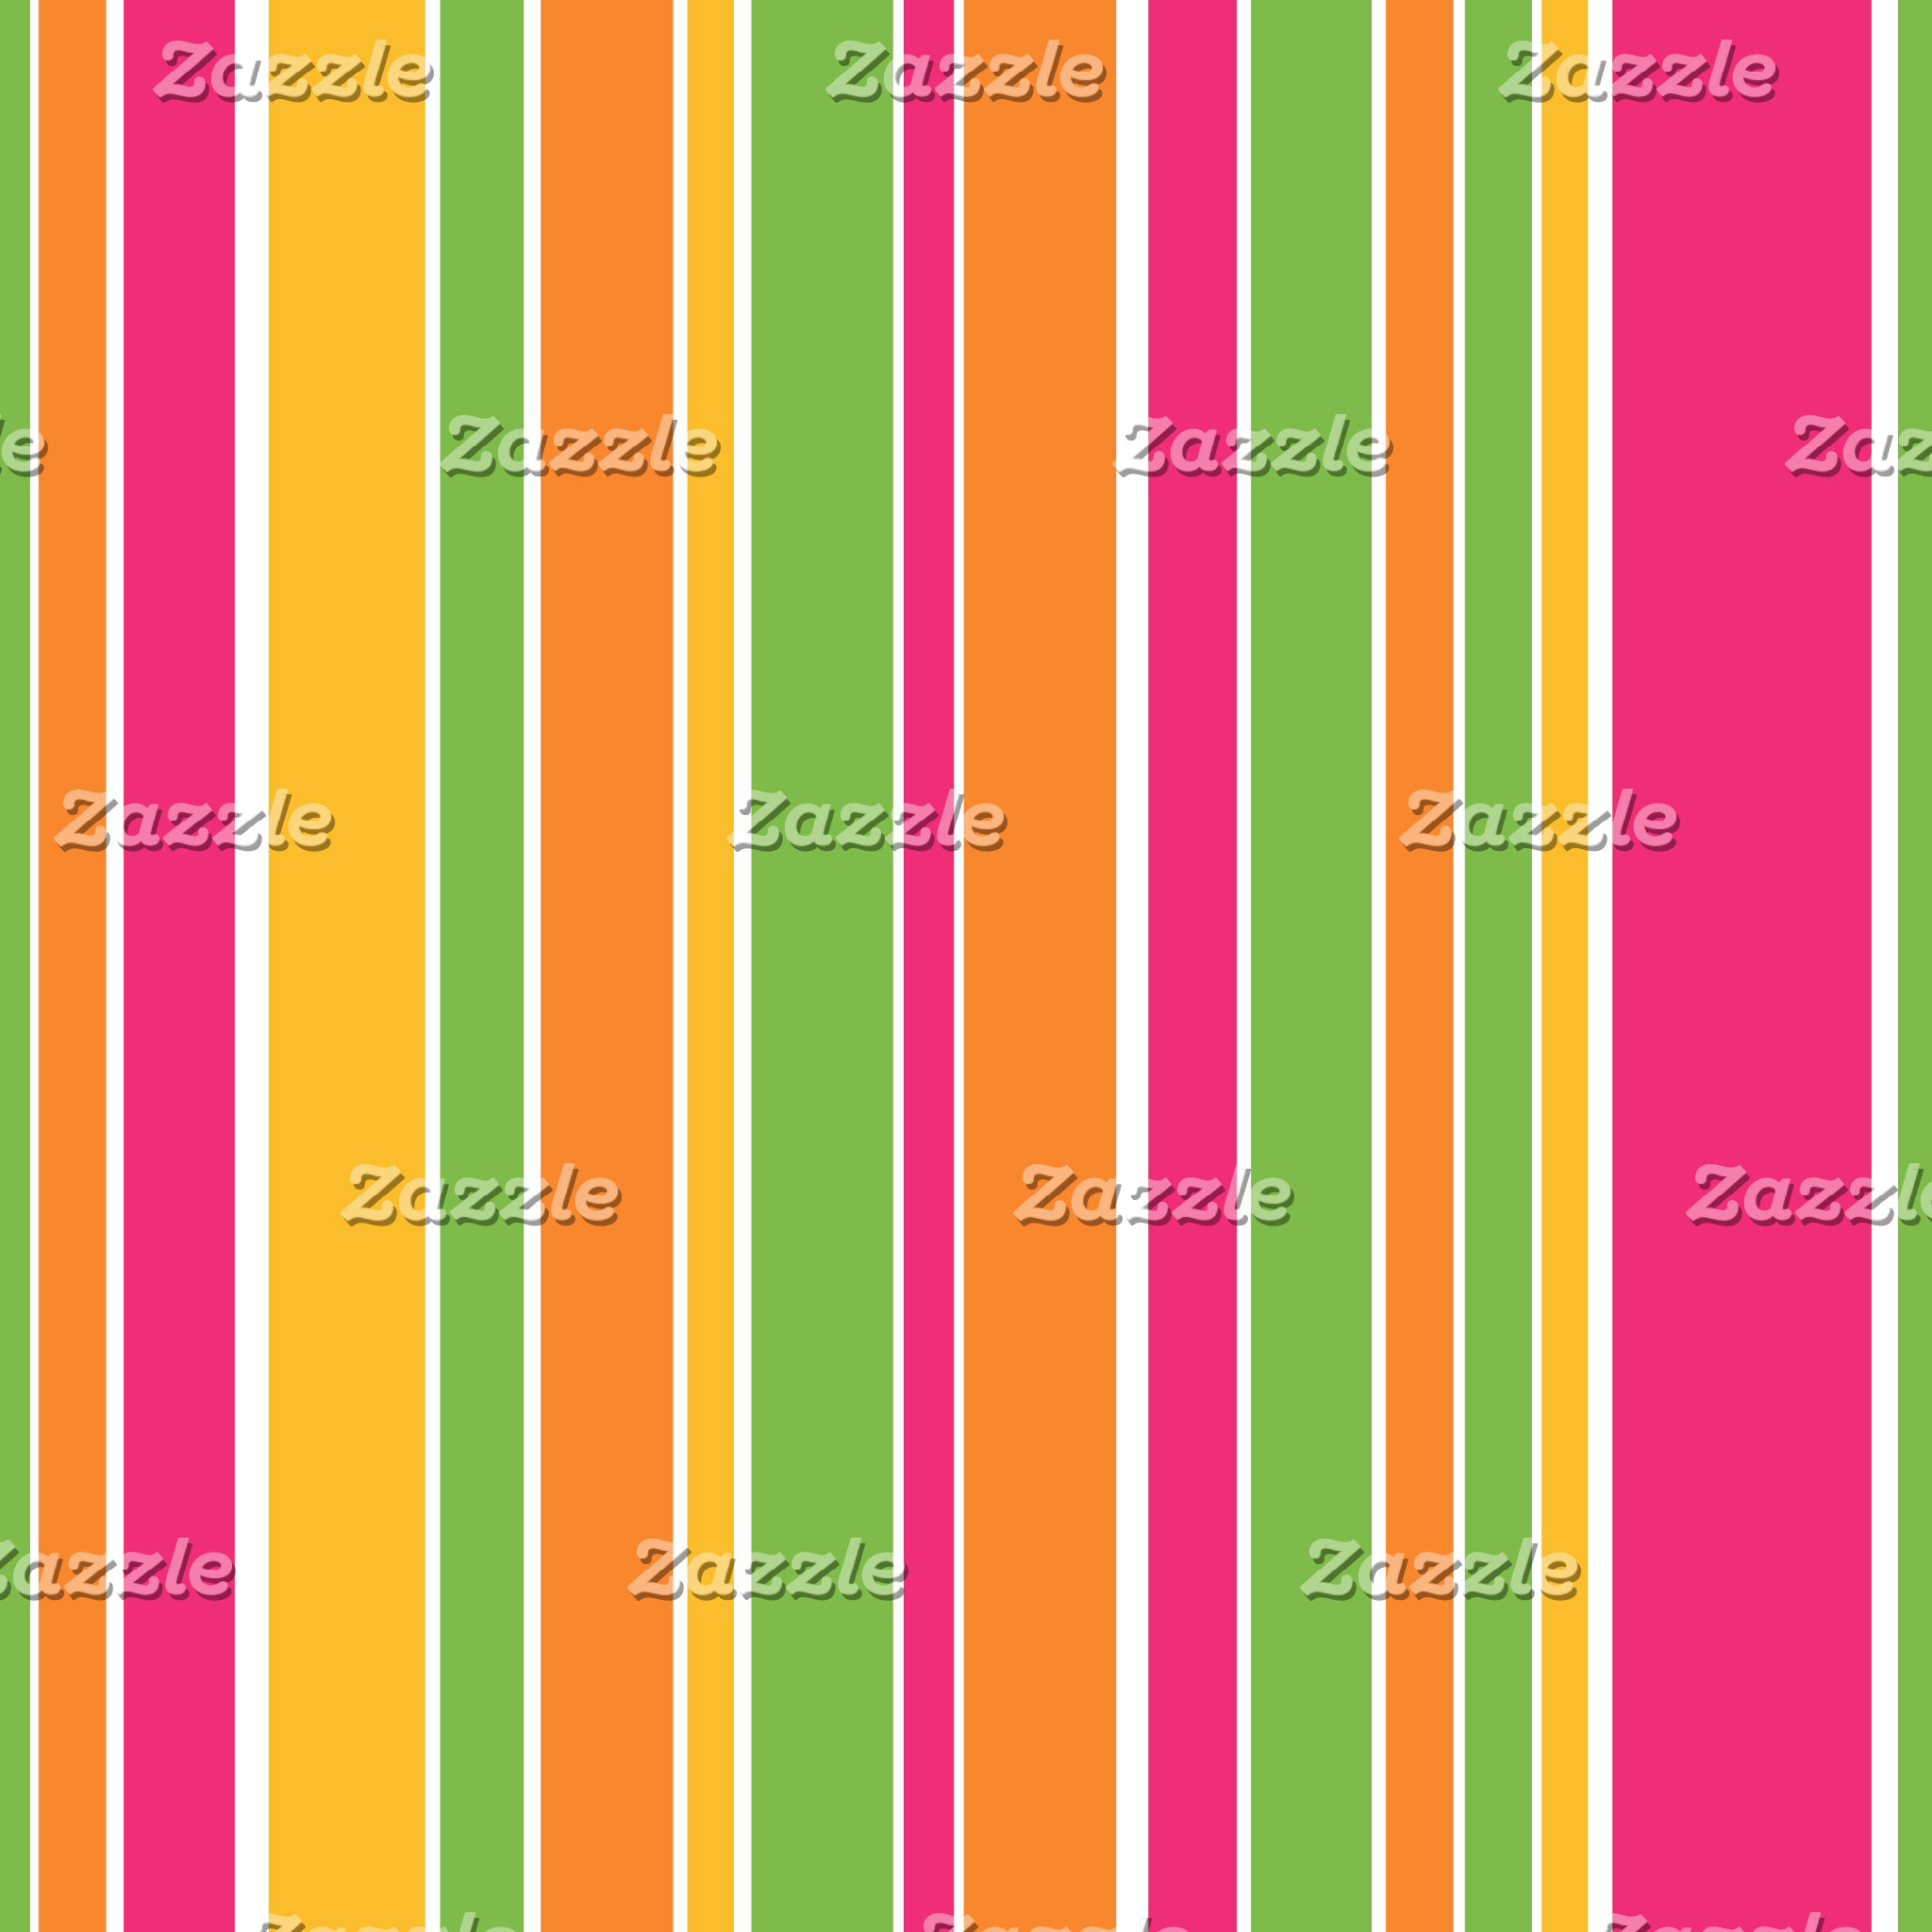 ALL THINGS CANDY STRIPED